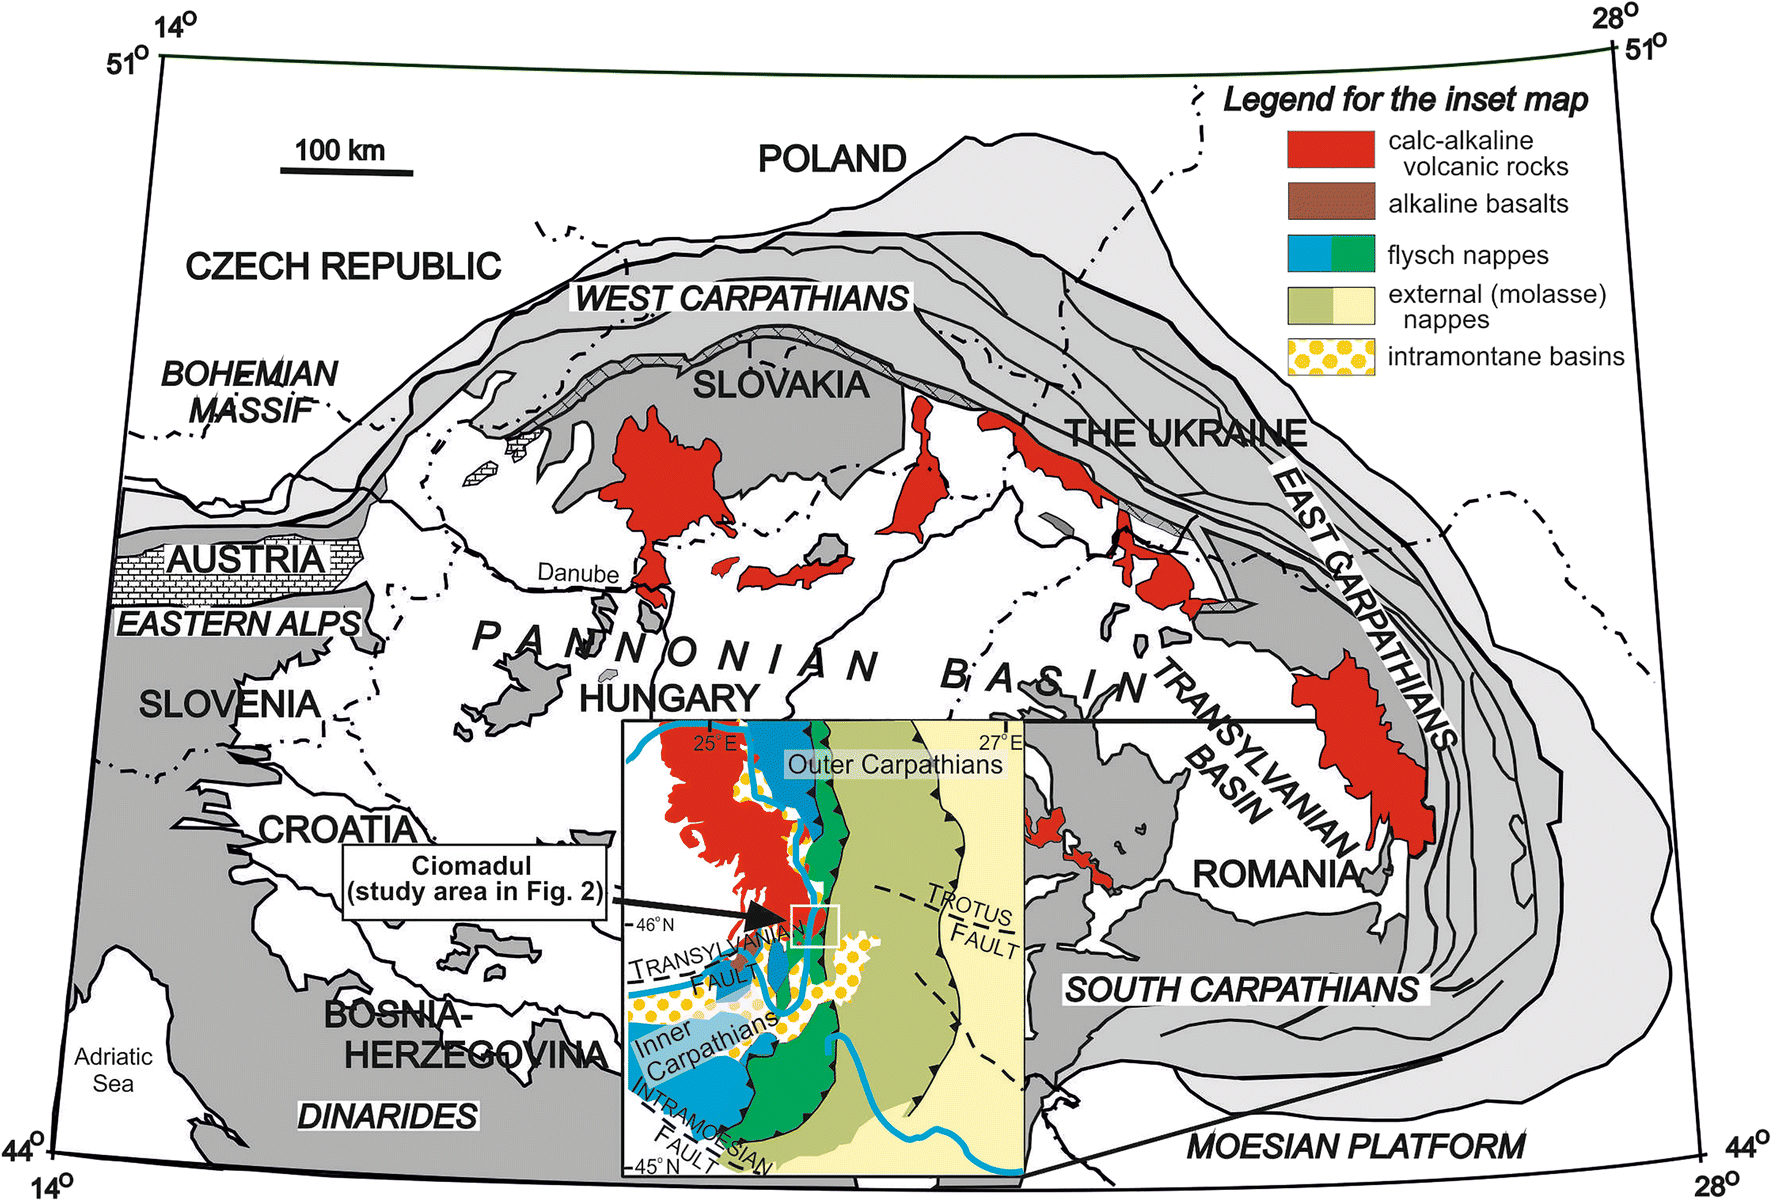 Eruptive history of the Late Quaternary Ciomadul (Csomád